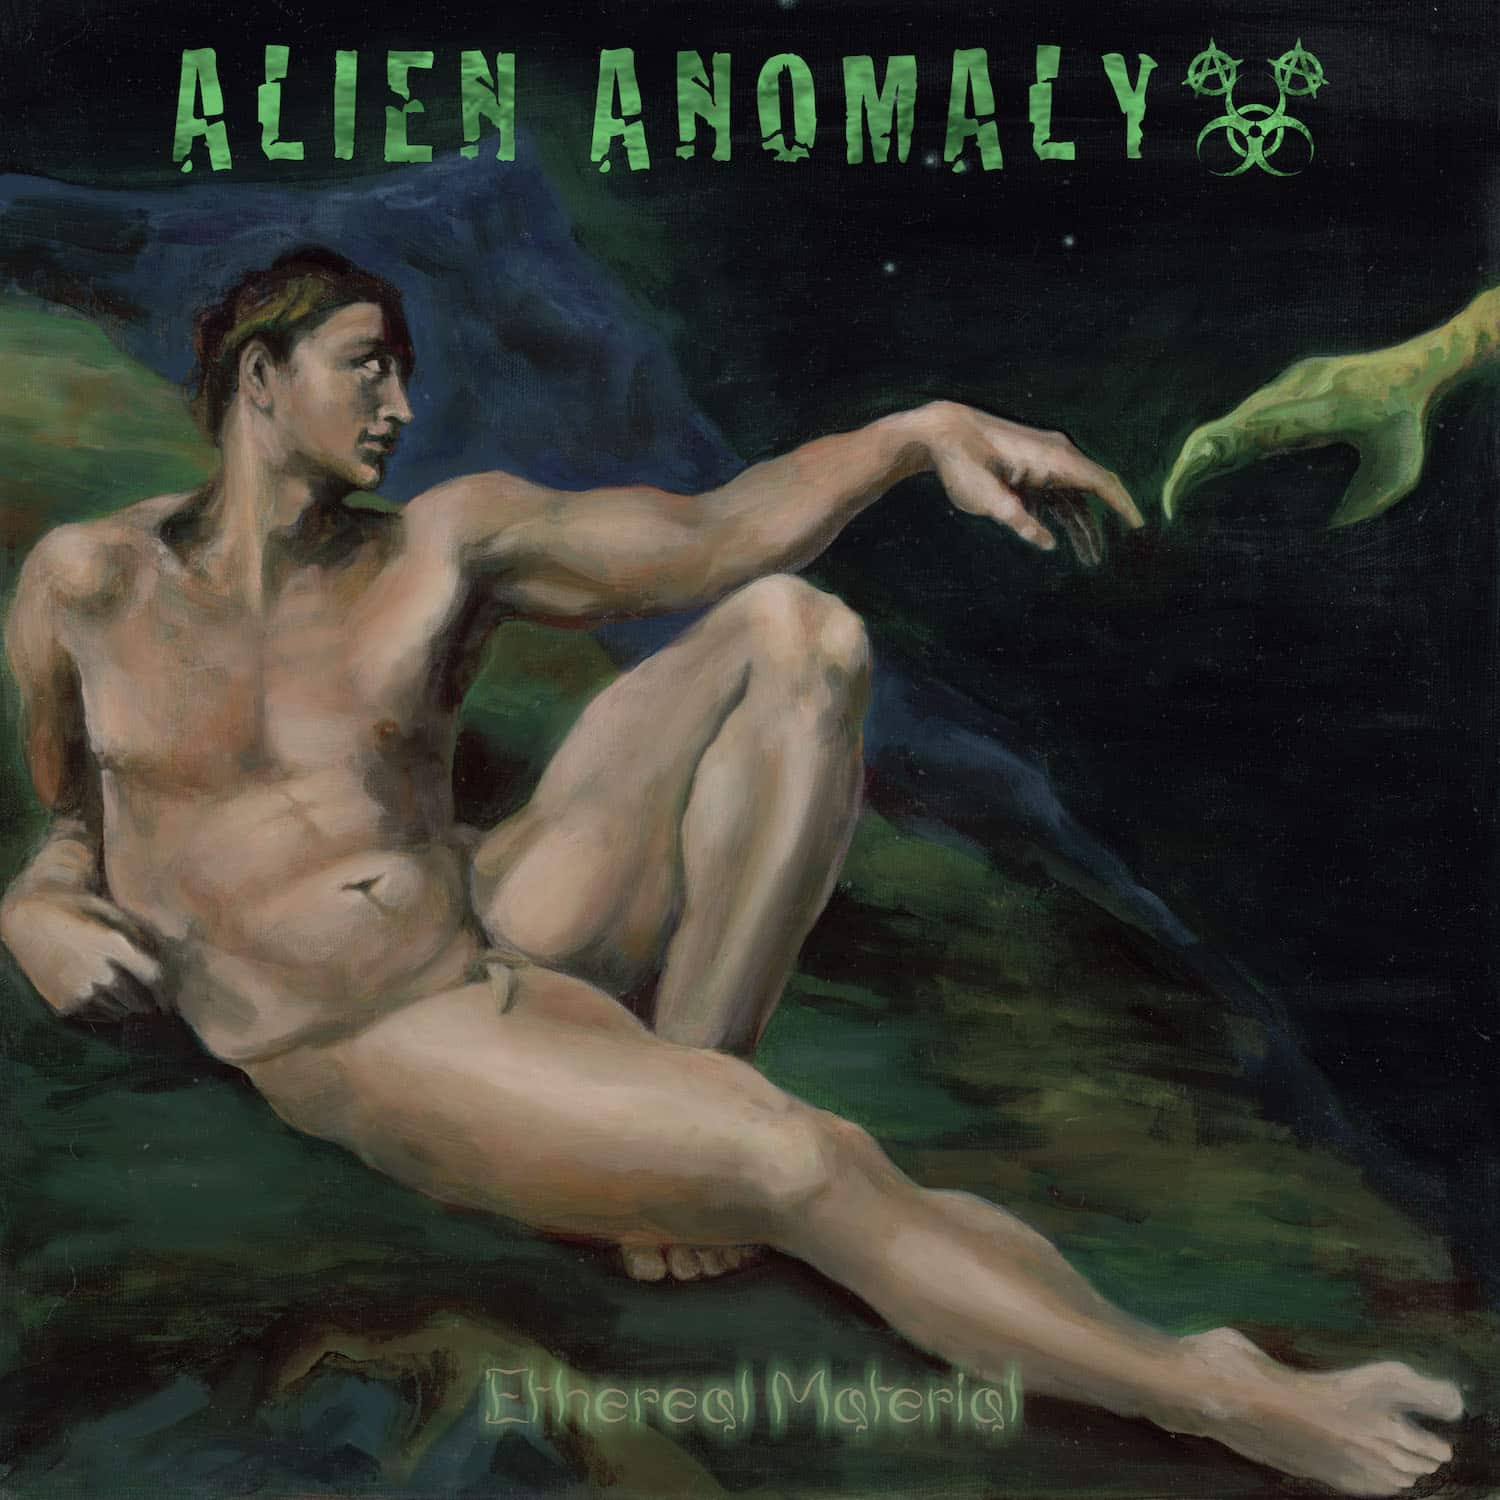 Alien Anomaly album cover